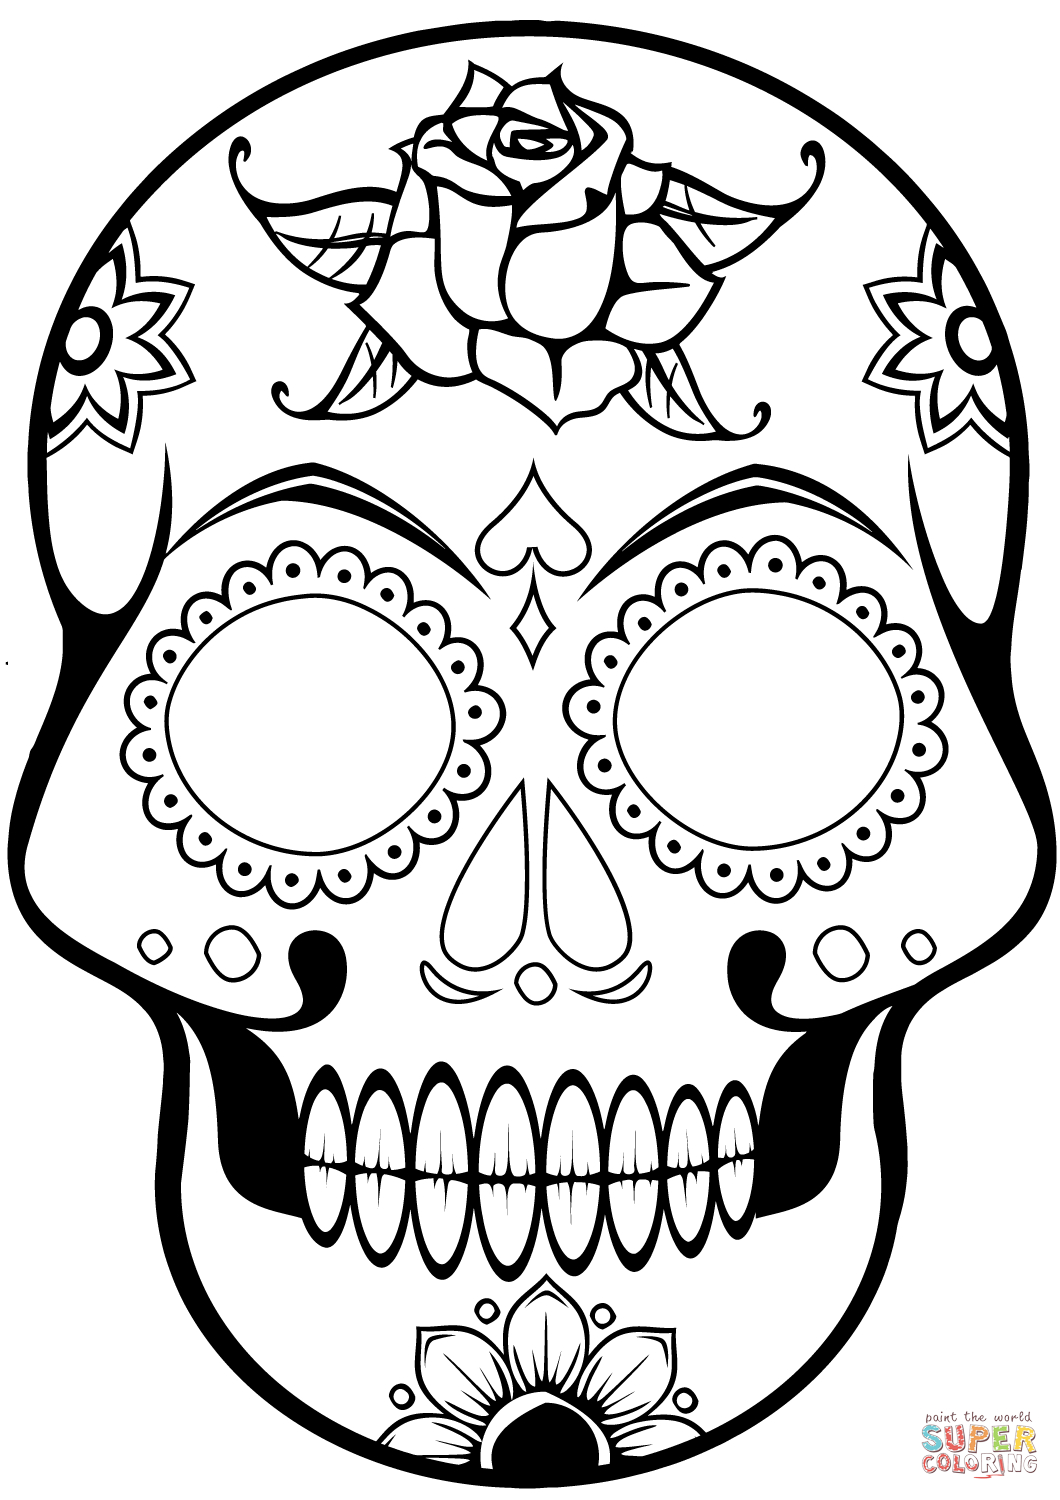 Skull Coloring Pages | Free Download Best Skull Coloring Pages On - Free Printable Sugar Skull Coloring Pages